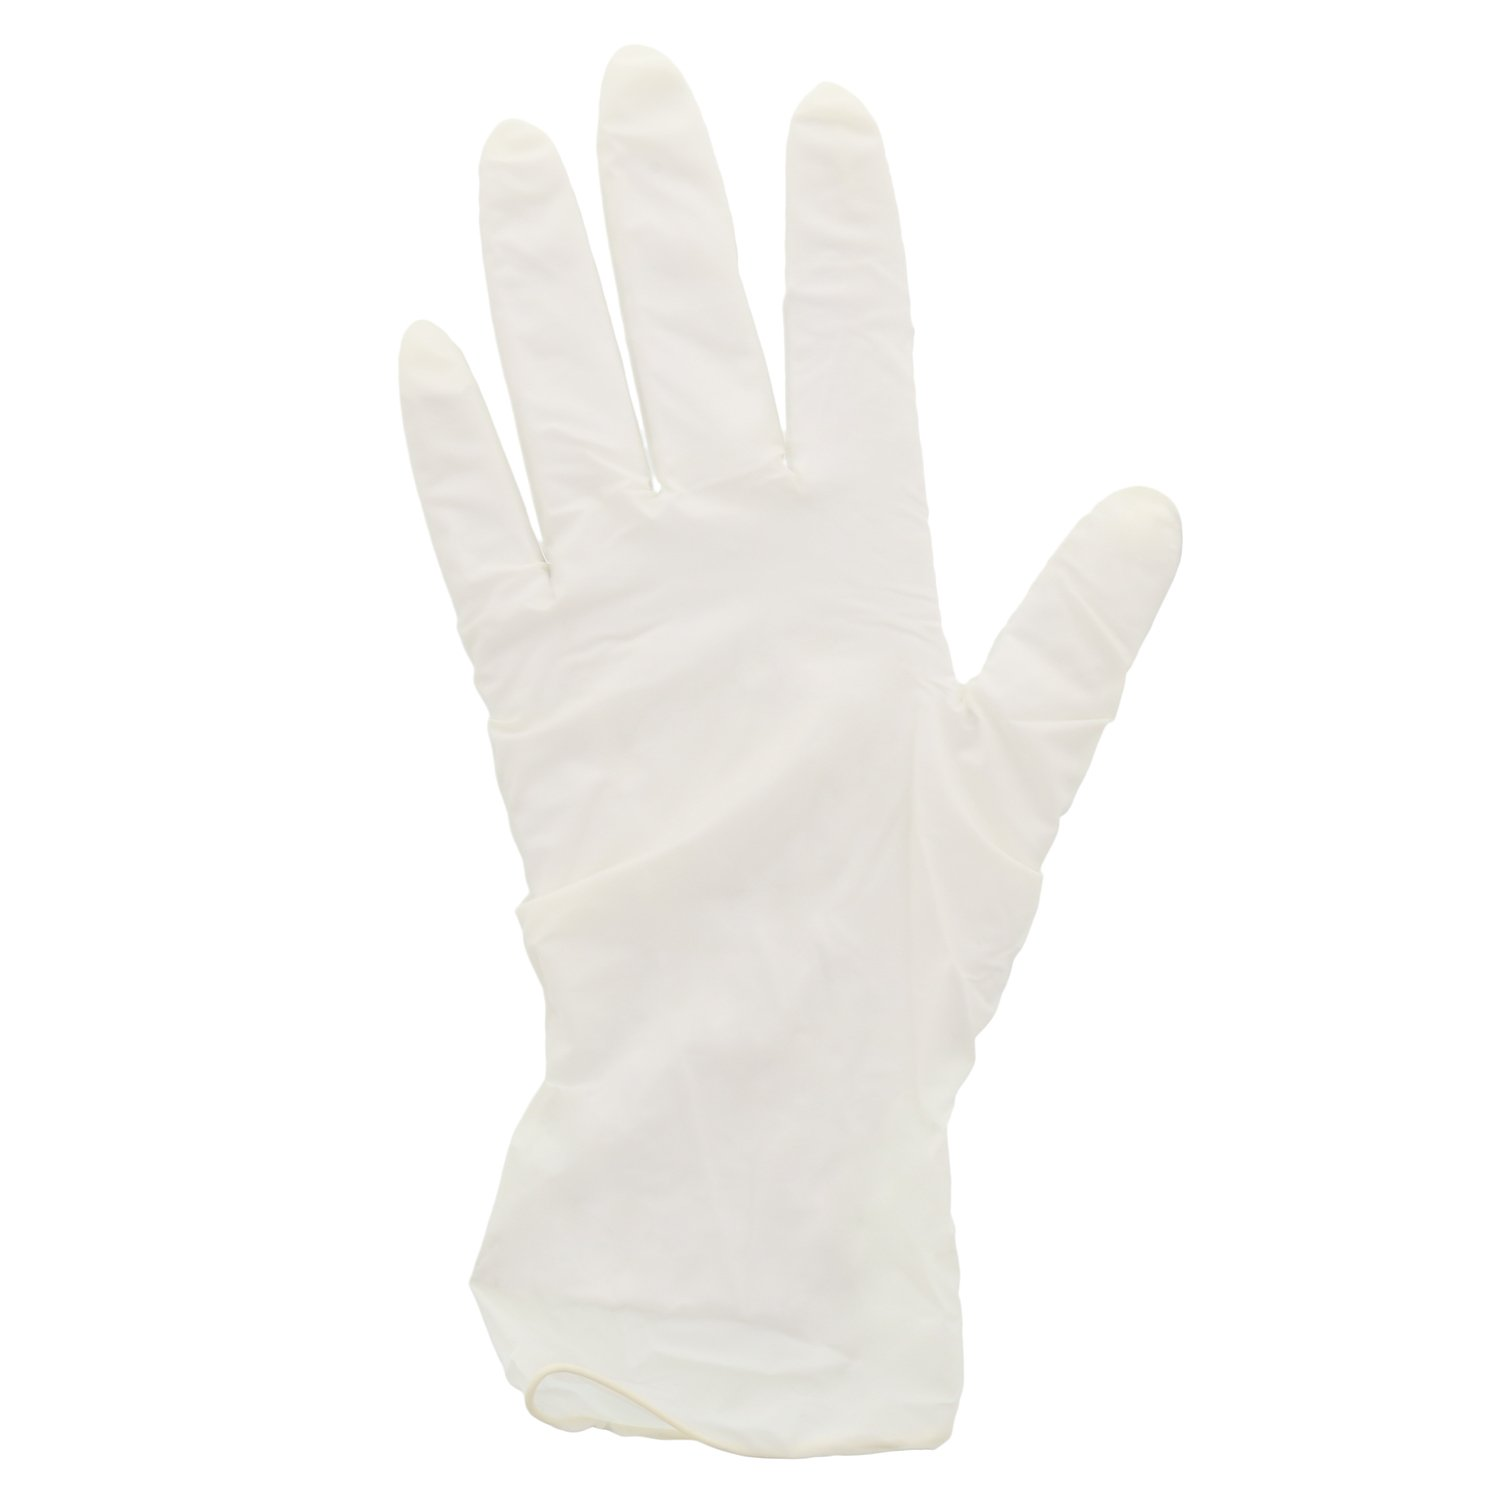 AmerCare Apollo Latex Gloves, Powder Free, Medium, Case of 1000 by AmerCare